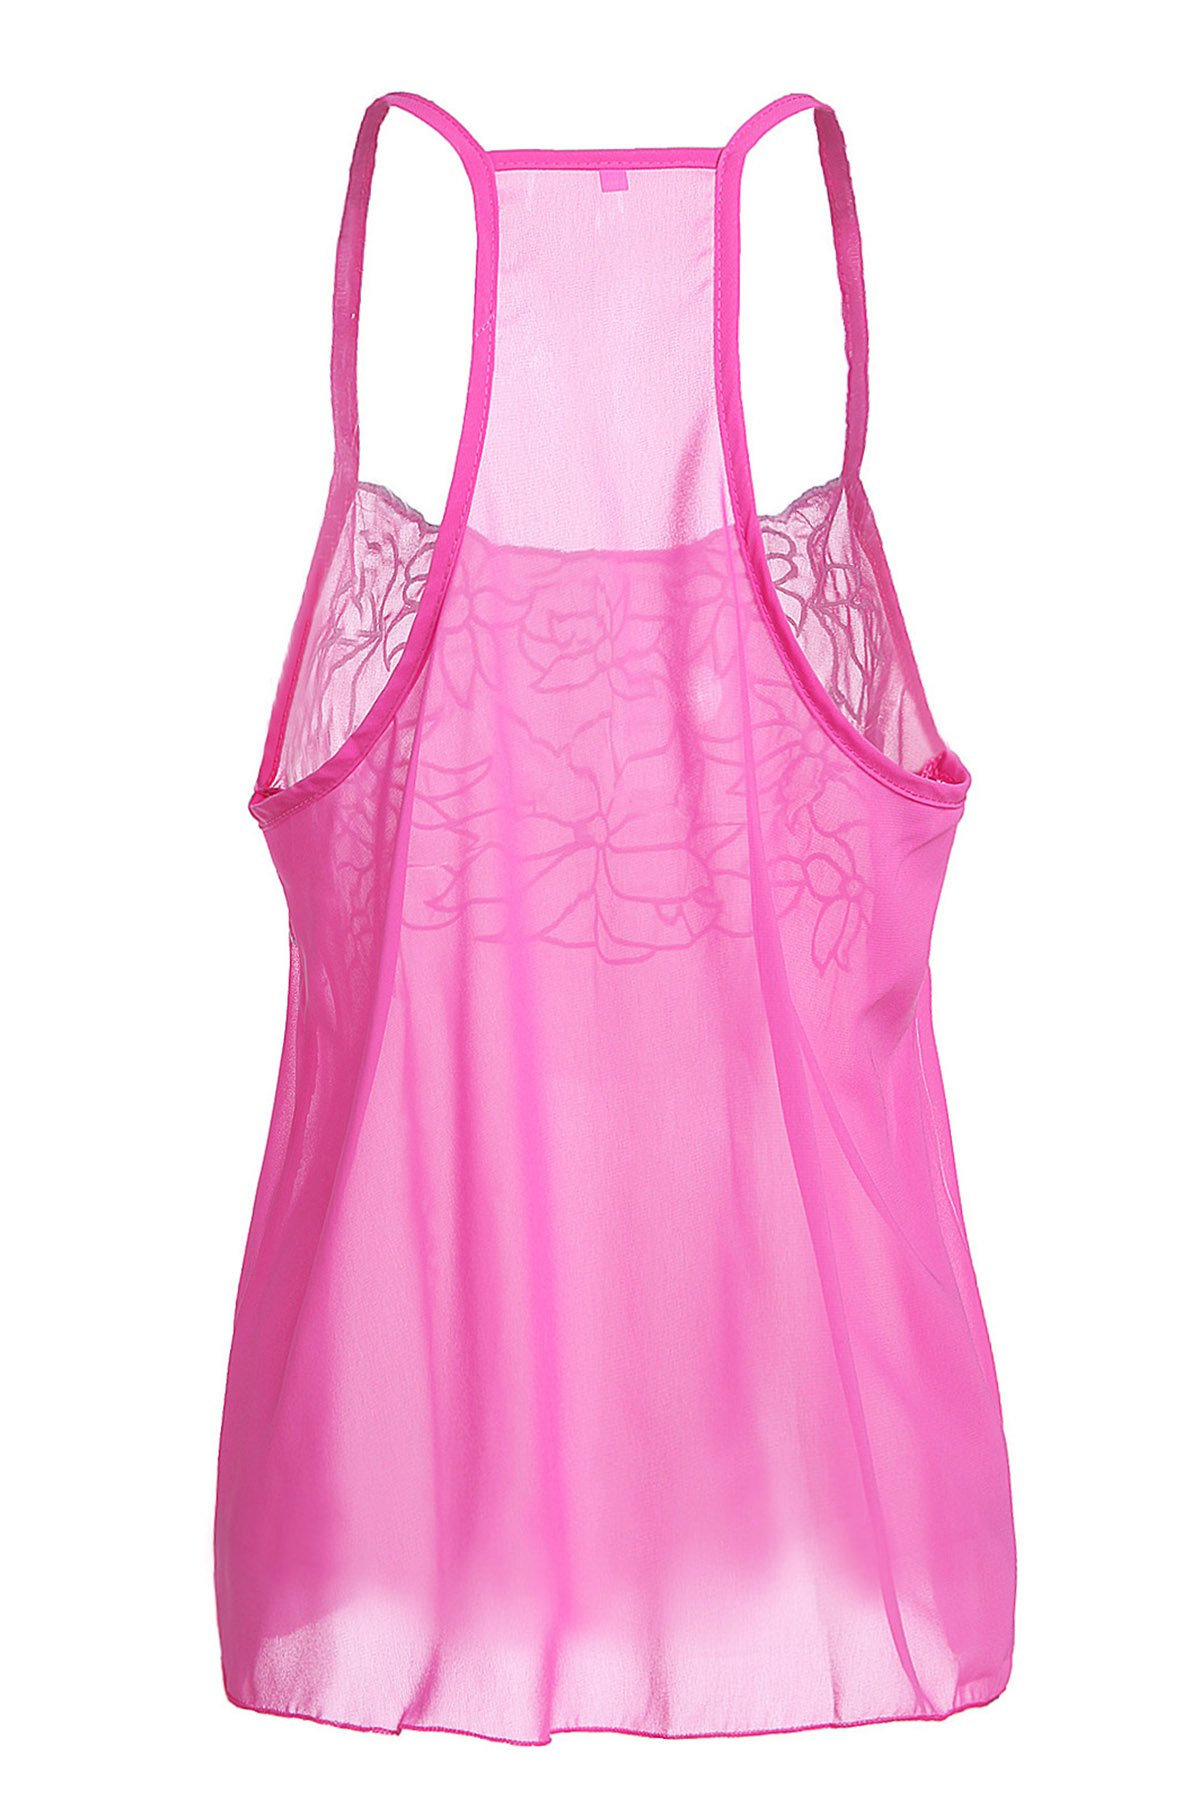 Casual Embroidered Flower Low Cut Chiffon Racerback Tank Top For Women - PINK M